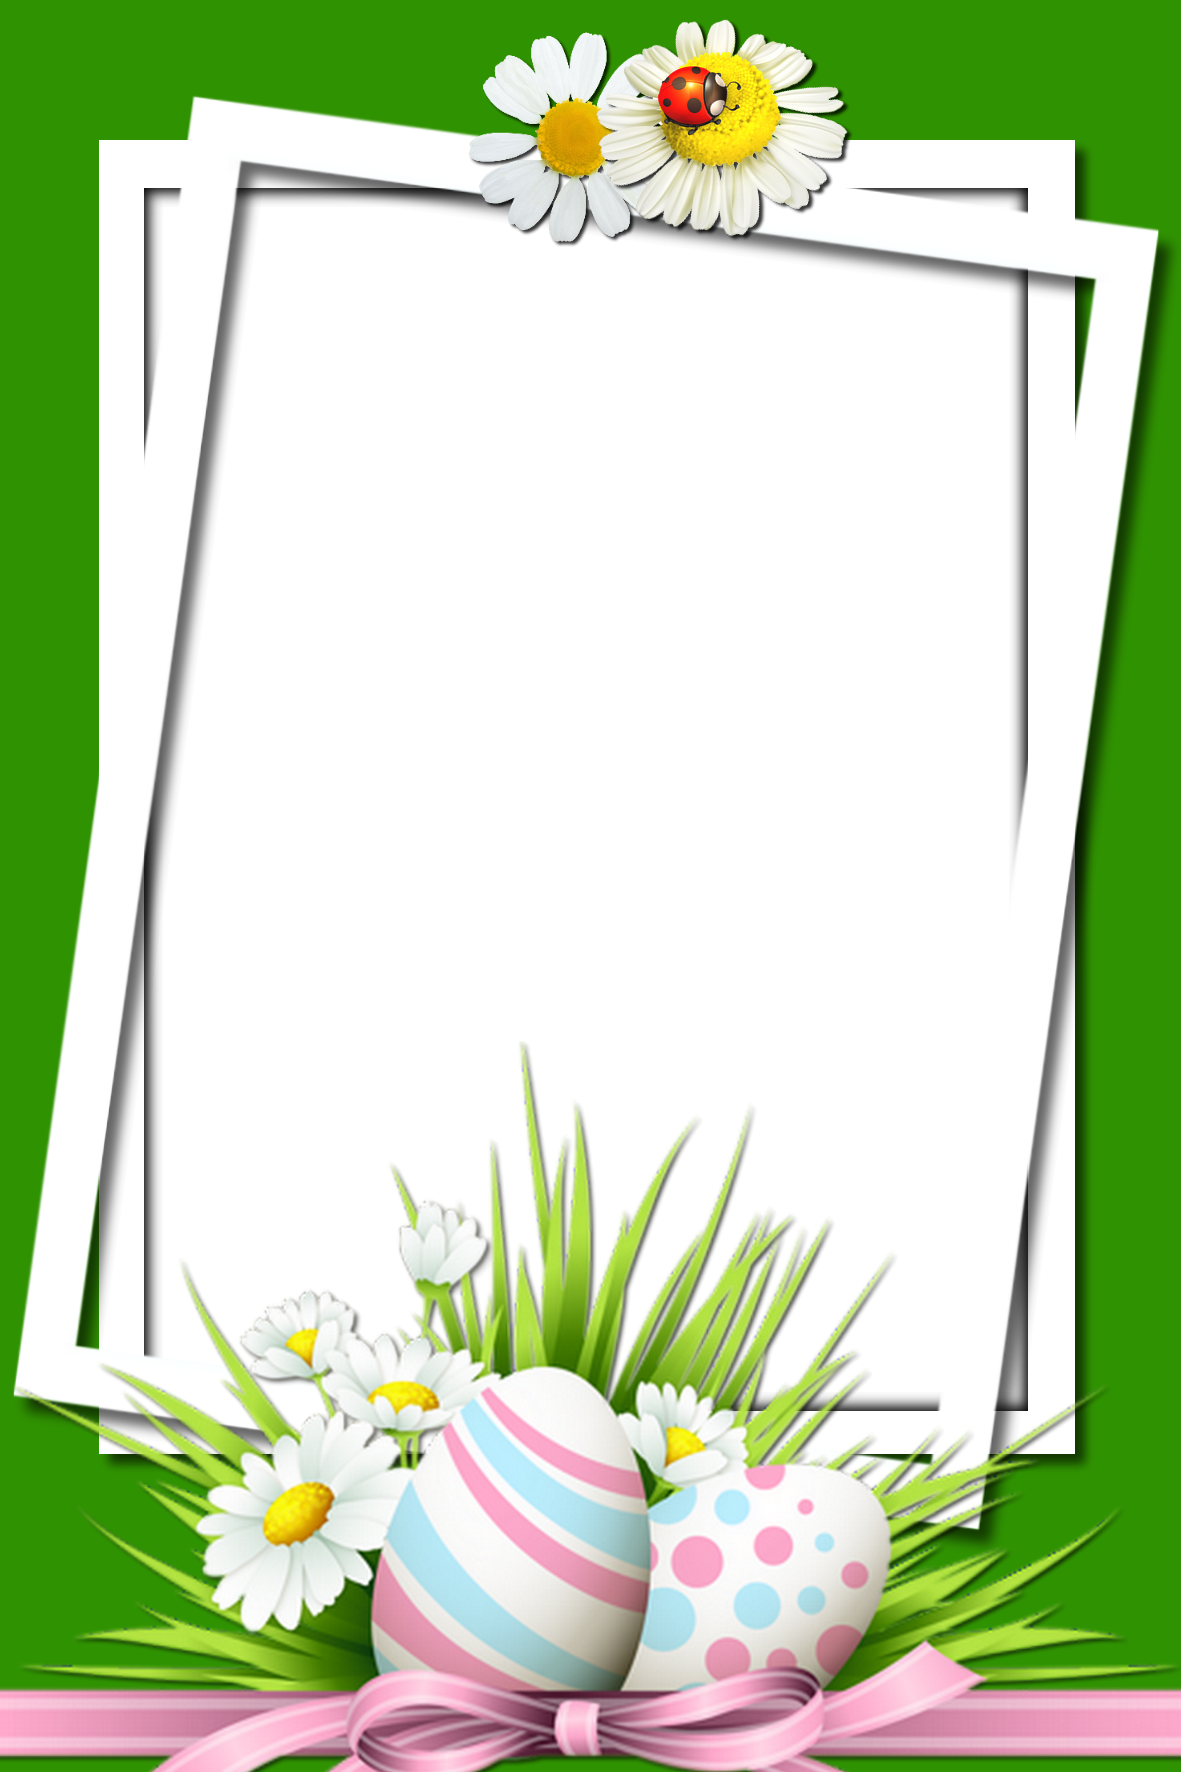 Easter Png Frame Boarders And Frames Page Borders Design Colorful Borders Design